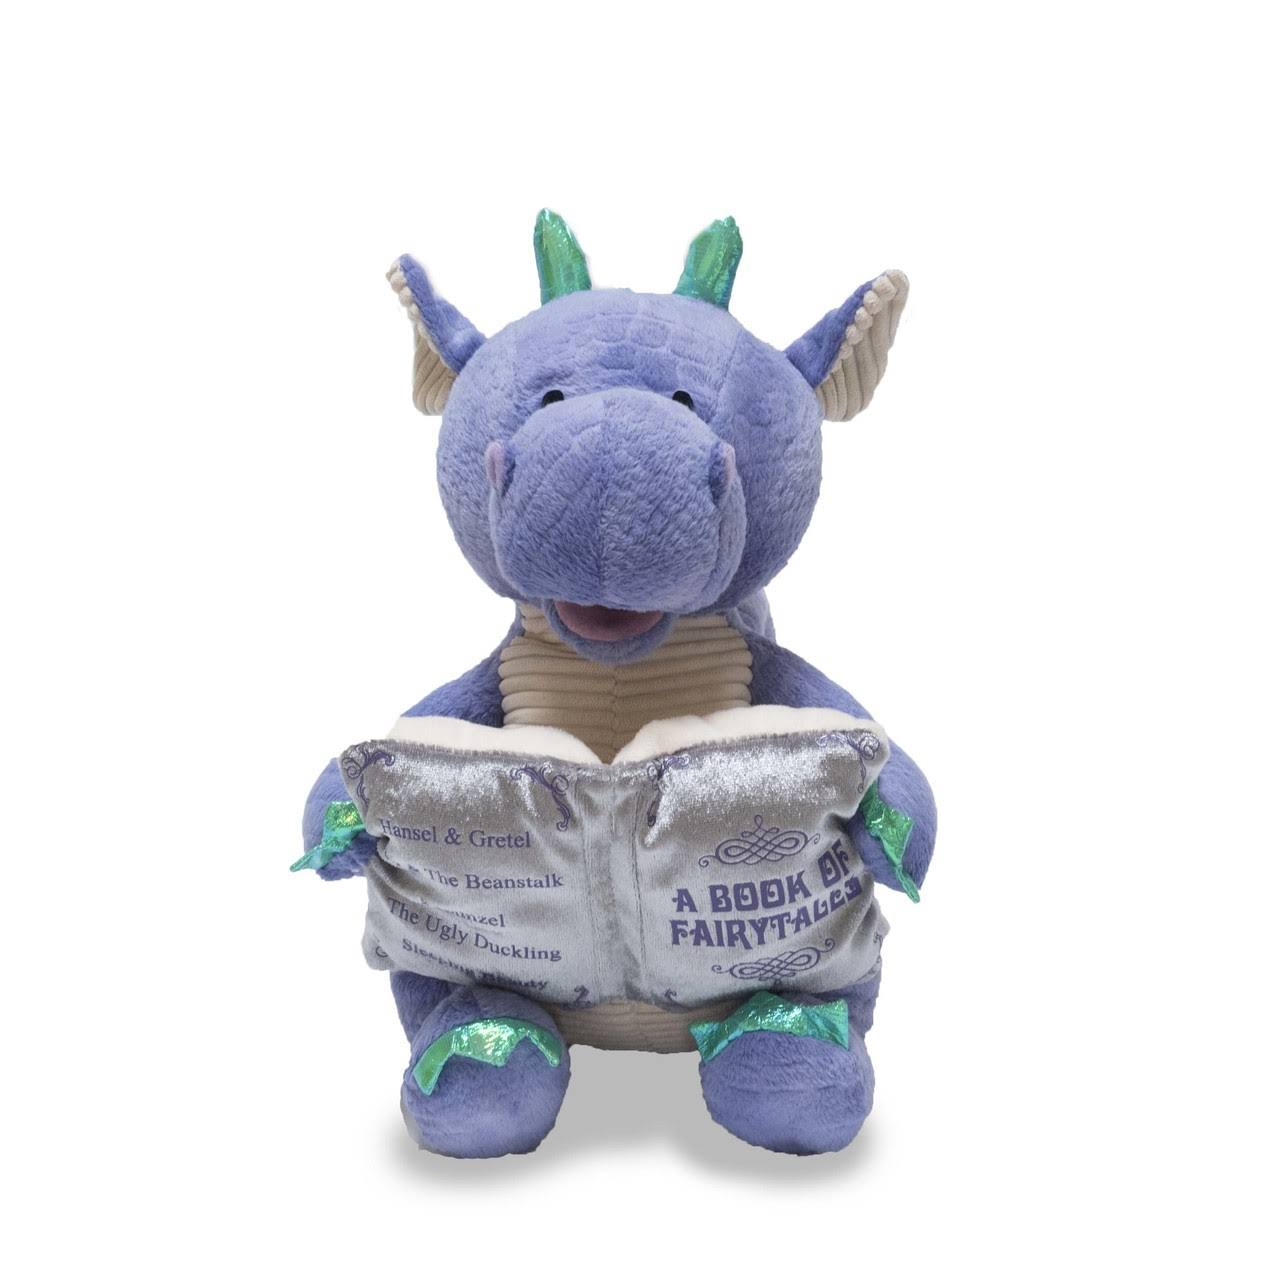 Cuddle Barn Dalton The Storytelling Dragon Animated Plush Stuffed Animal - 12""